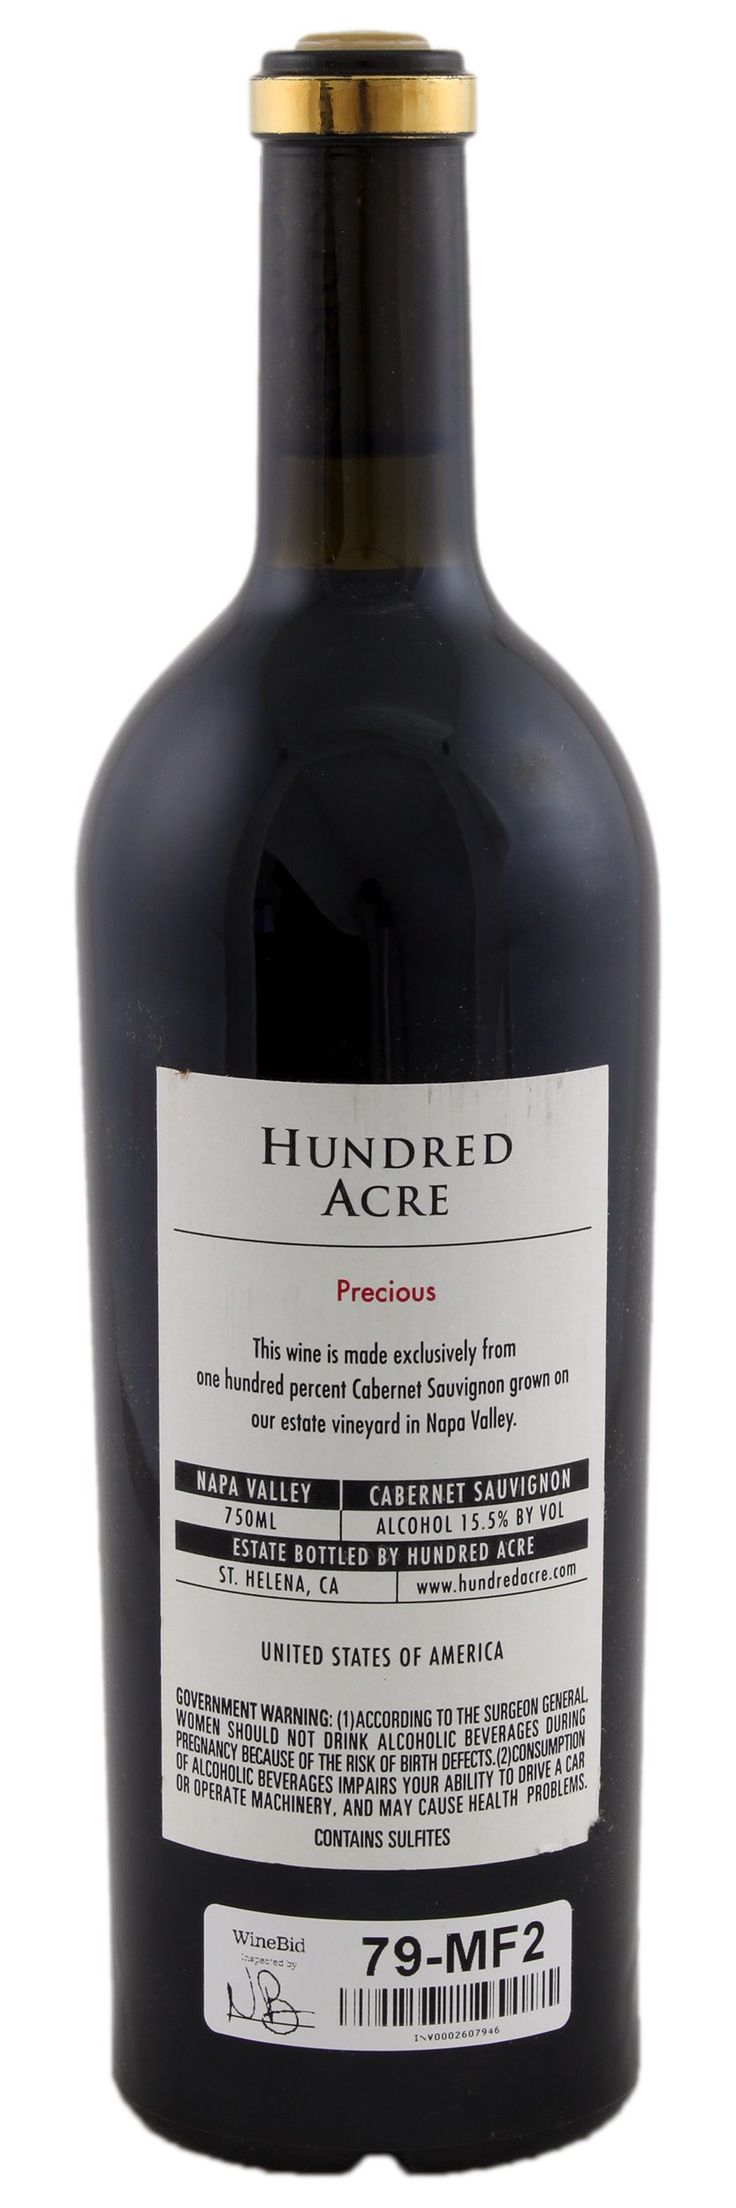 Hundred Acre Precious Cabernet Sauvignon 2005, Red Wine from United States - WineBid